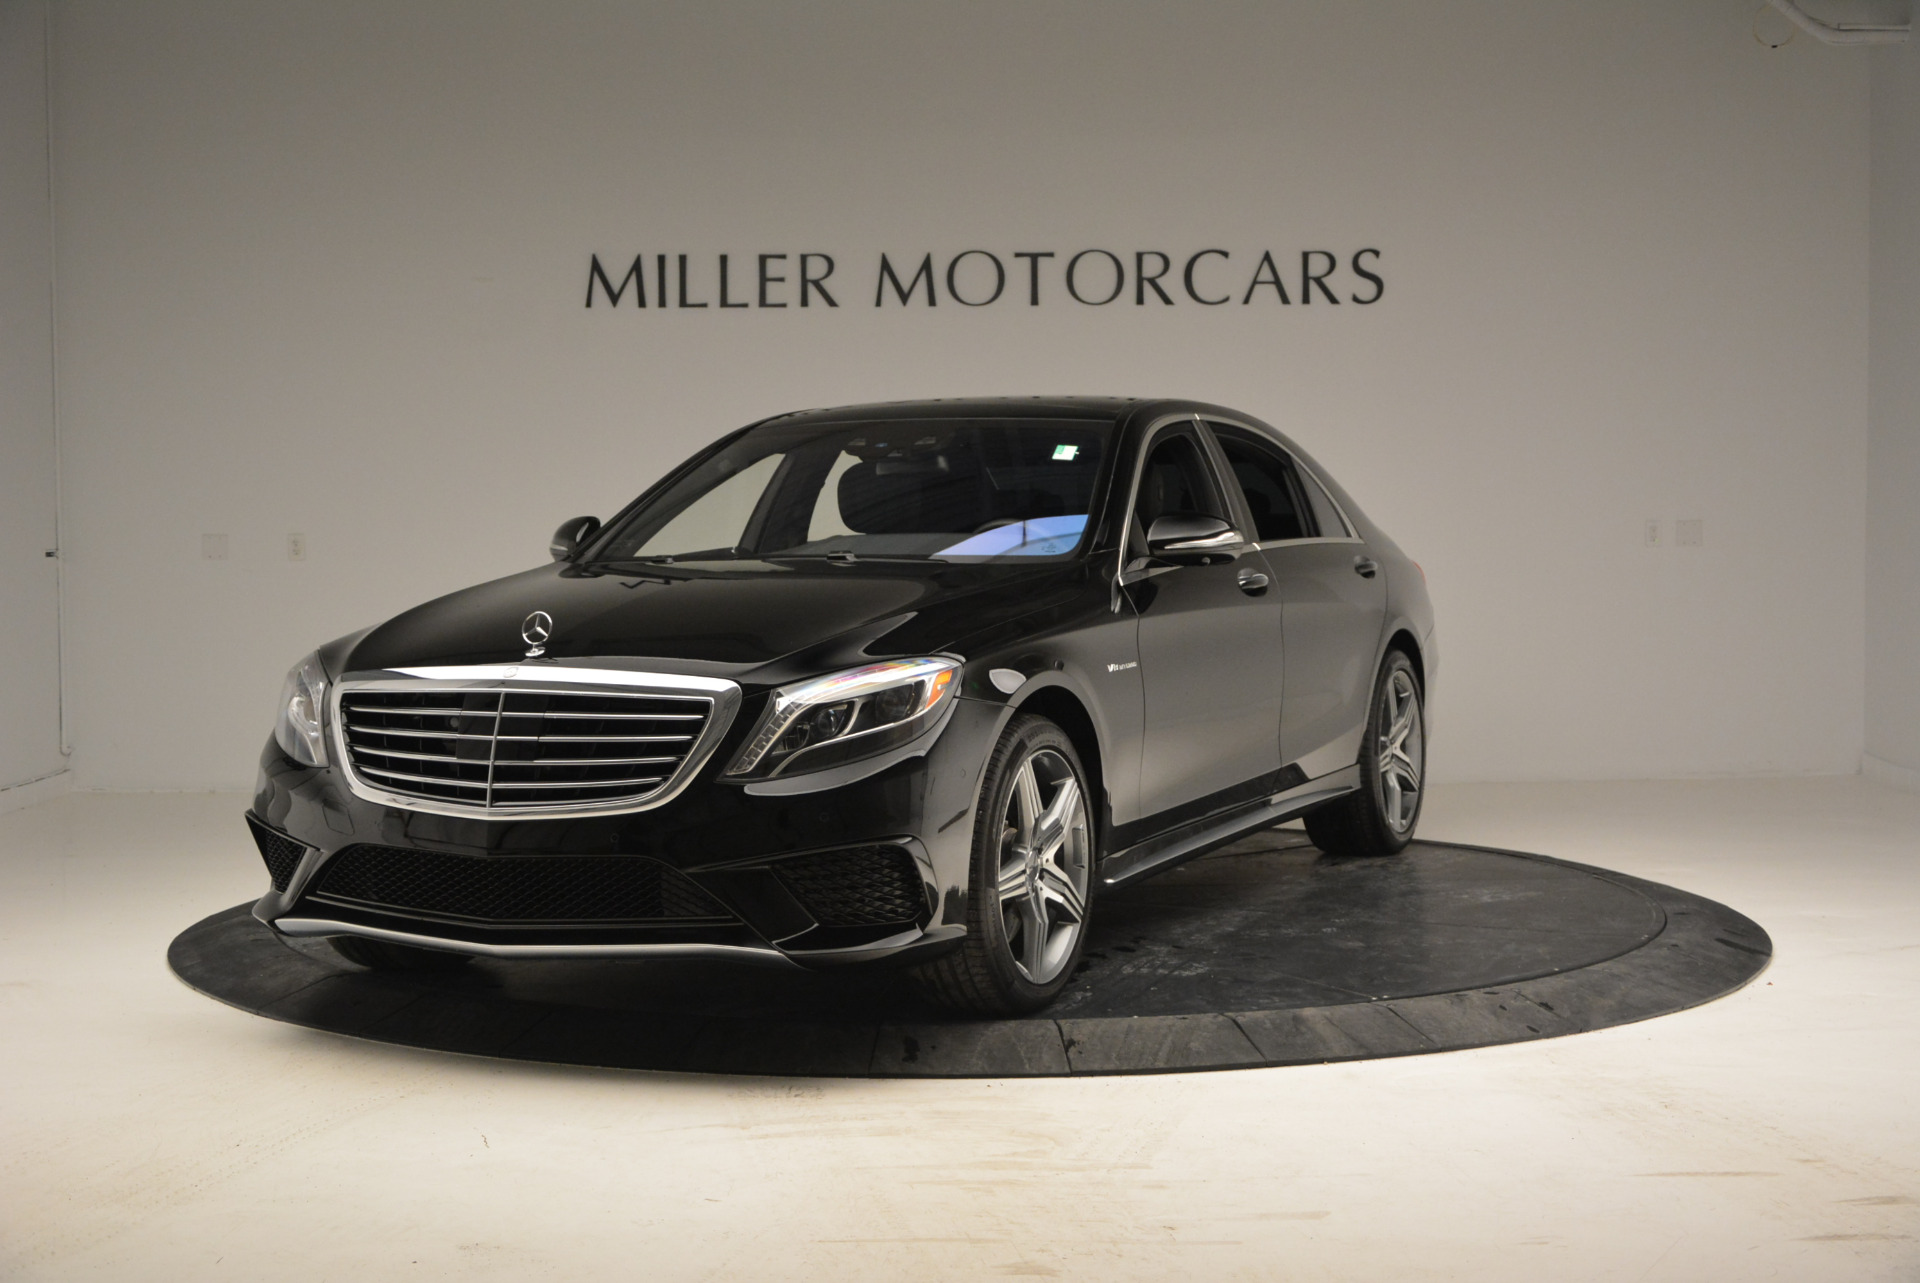 Used 2014 Mercedes Benz S-Class S 63 AMG for sale Sold at Alfa Romeo of Westport in Westport CT 06880 1